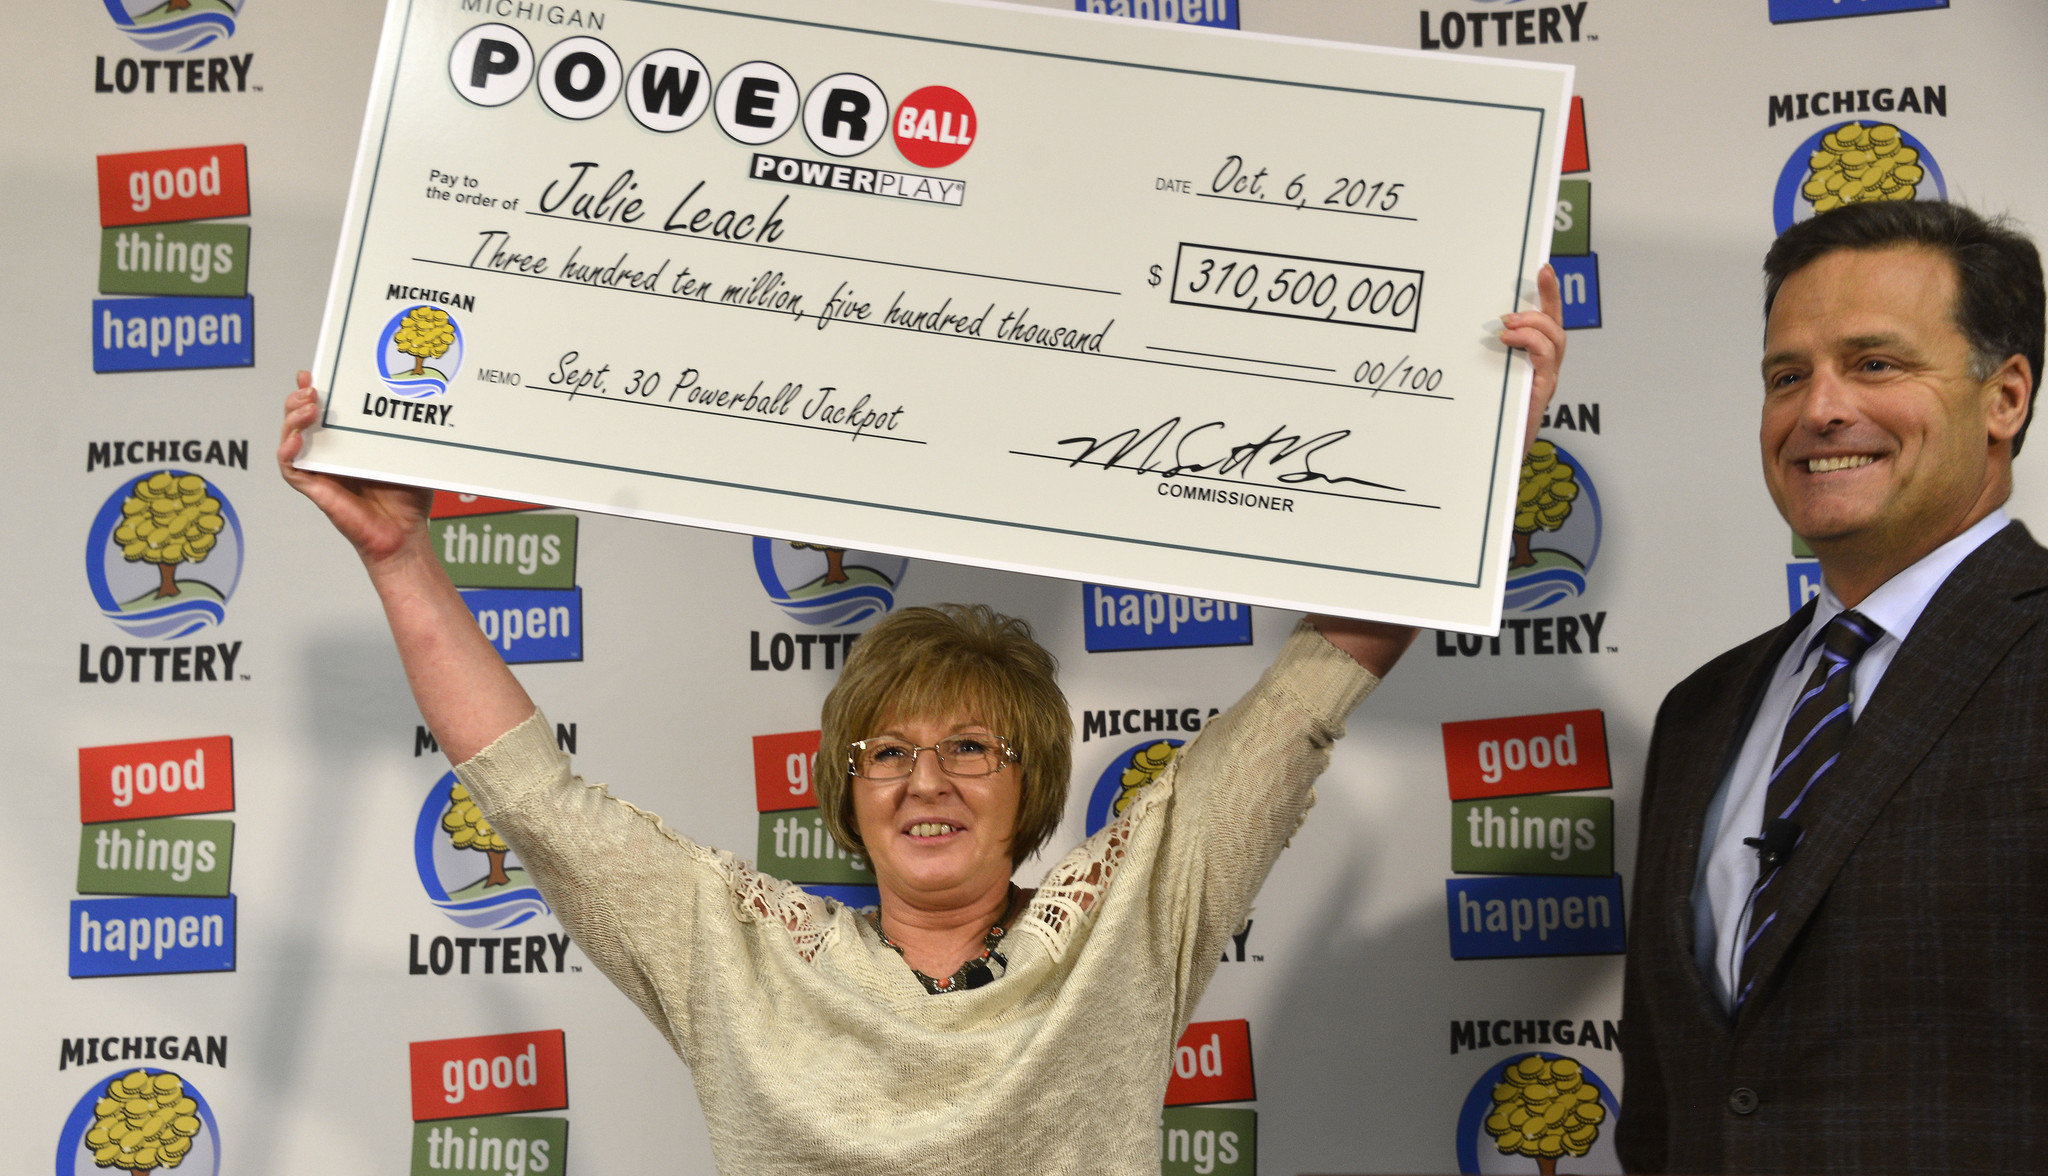 Should Lottery Winners' Names Be Secret? States Debate The